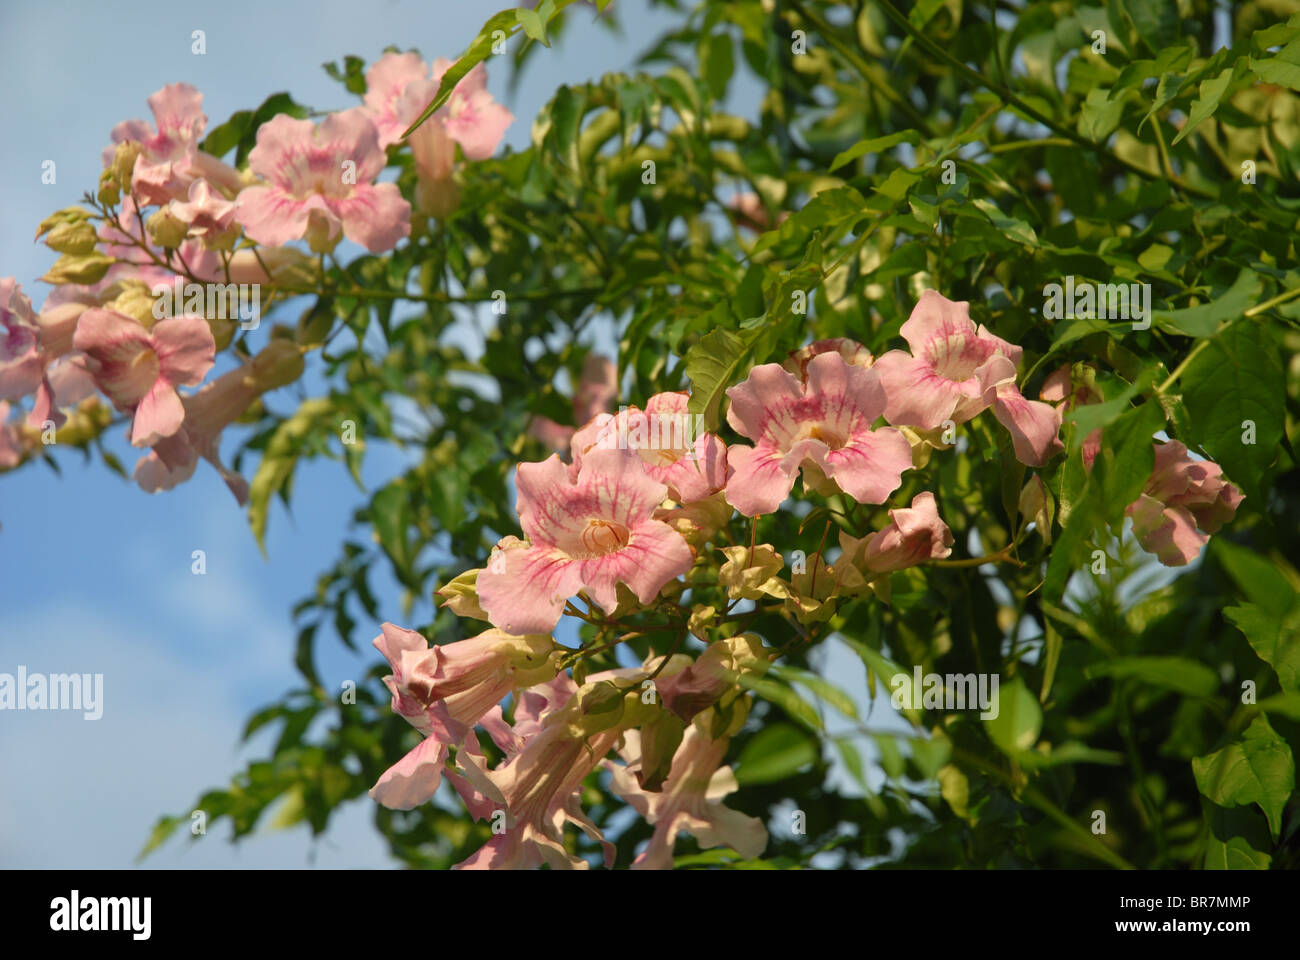 Pink trumpet vine bignonia in flower spain stock photo 31517382 pink trumpet vine bignonia in flower spain mightylinksfo